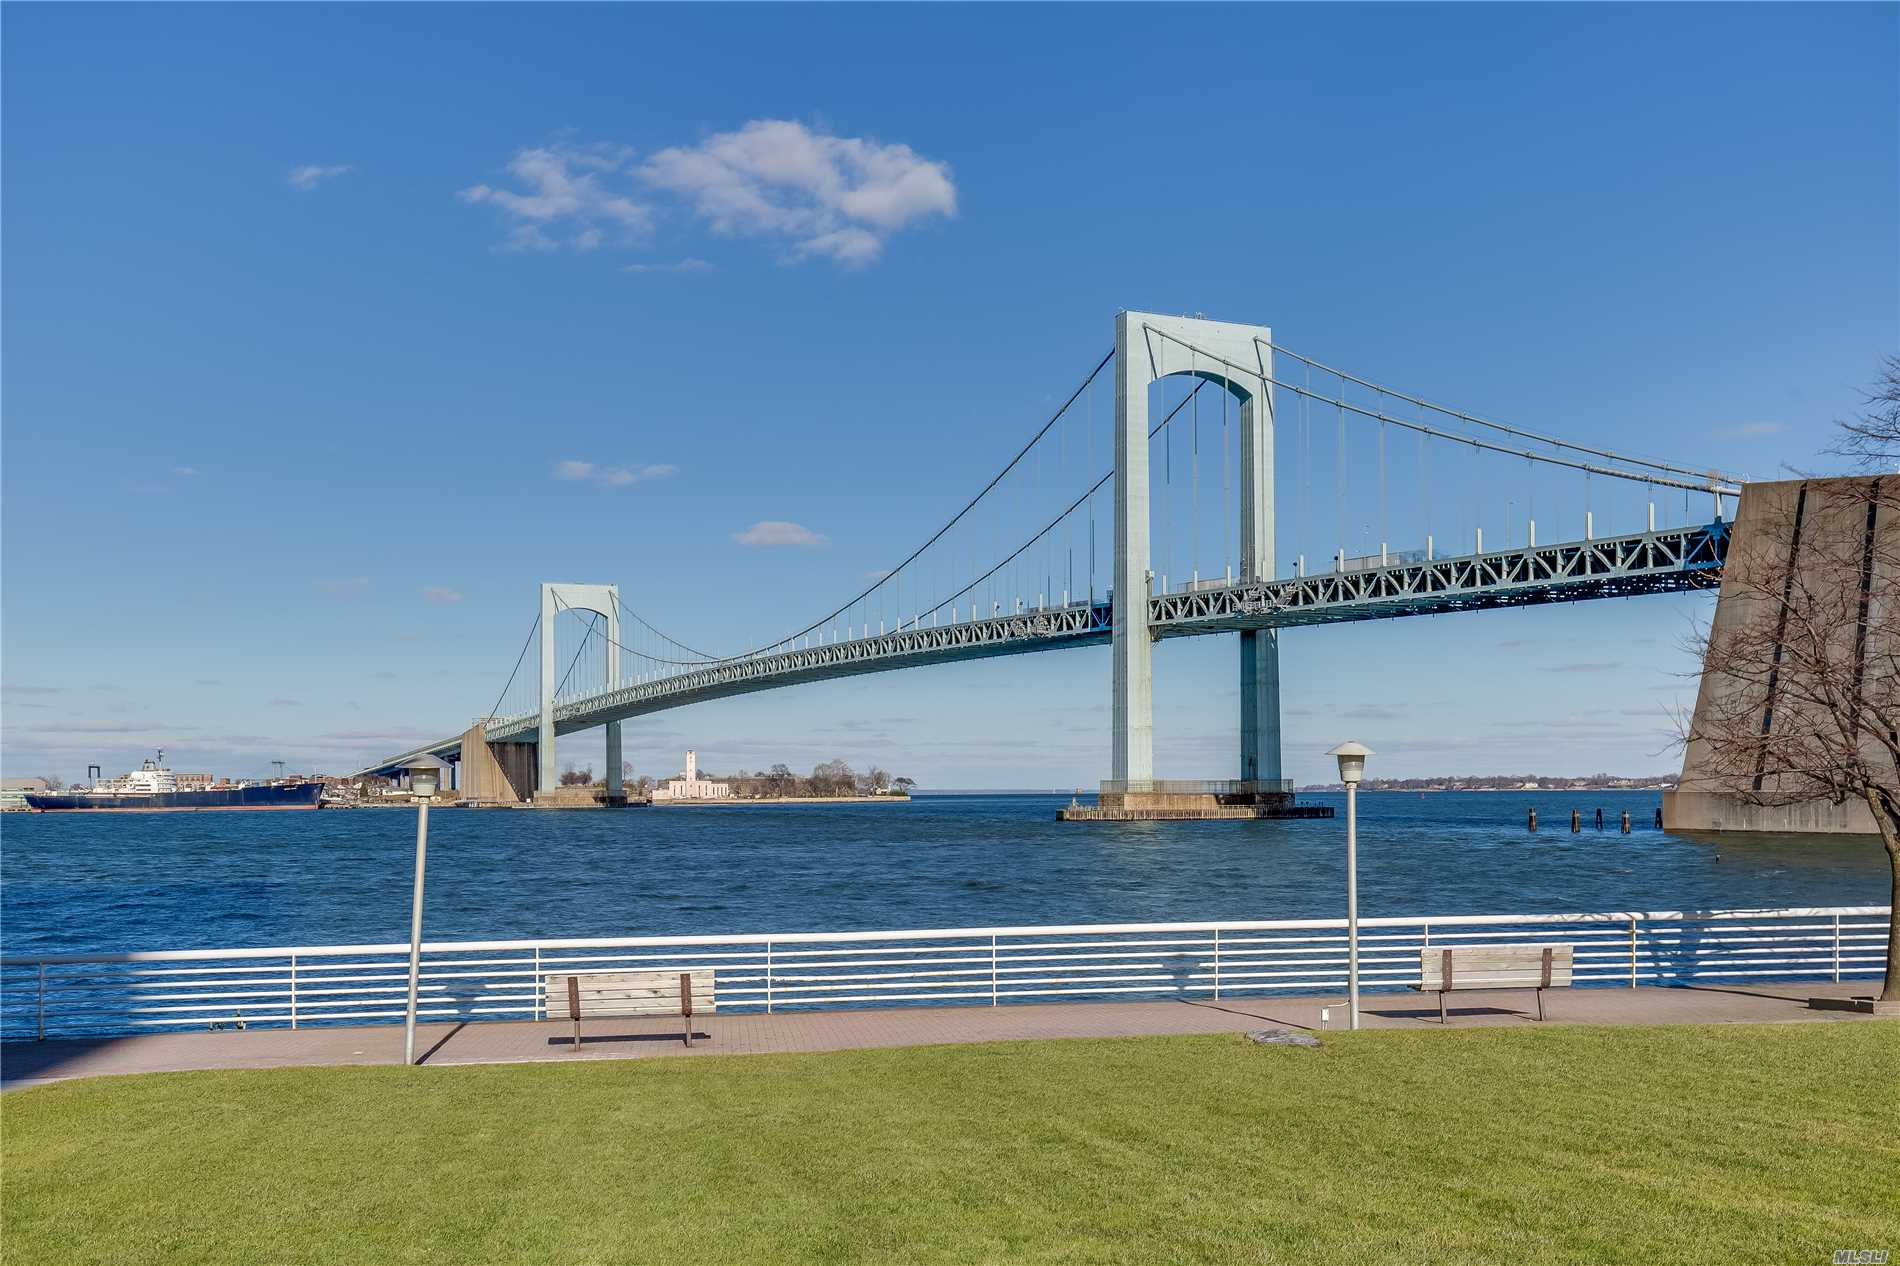 Enjoy Your Own Piece Of Paradise Where Luxury, Comfort & Convenience Meet! Wake Up Every Day To The Unobstructed Waterviews Of Manhattan Skyline, Whitestone Bridge/East River From Every Room Of This Gorgeous Spacious Apartment, Unique Circular Foyer, Private Balcony, Many Updates, Closets Galore Incl Walk-In Closets, 24 Hrs Security Gated Community, Waterfront Promenade/Dock, Concierge, Valet Pkng, Verizon Fios, Live-In-Super, Package Rm, Can Easily Create 3rd Br/Office If Needed, Express Bus To Nyc At Corner